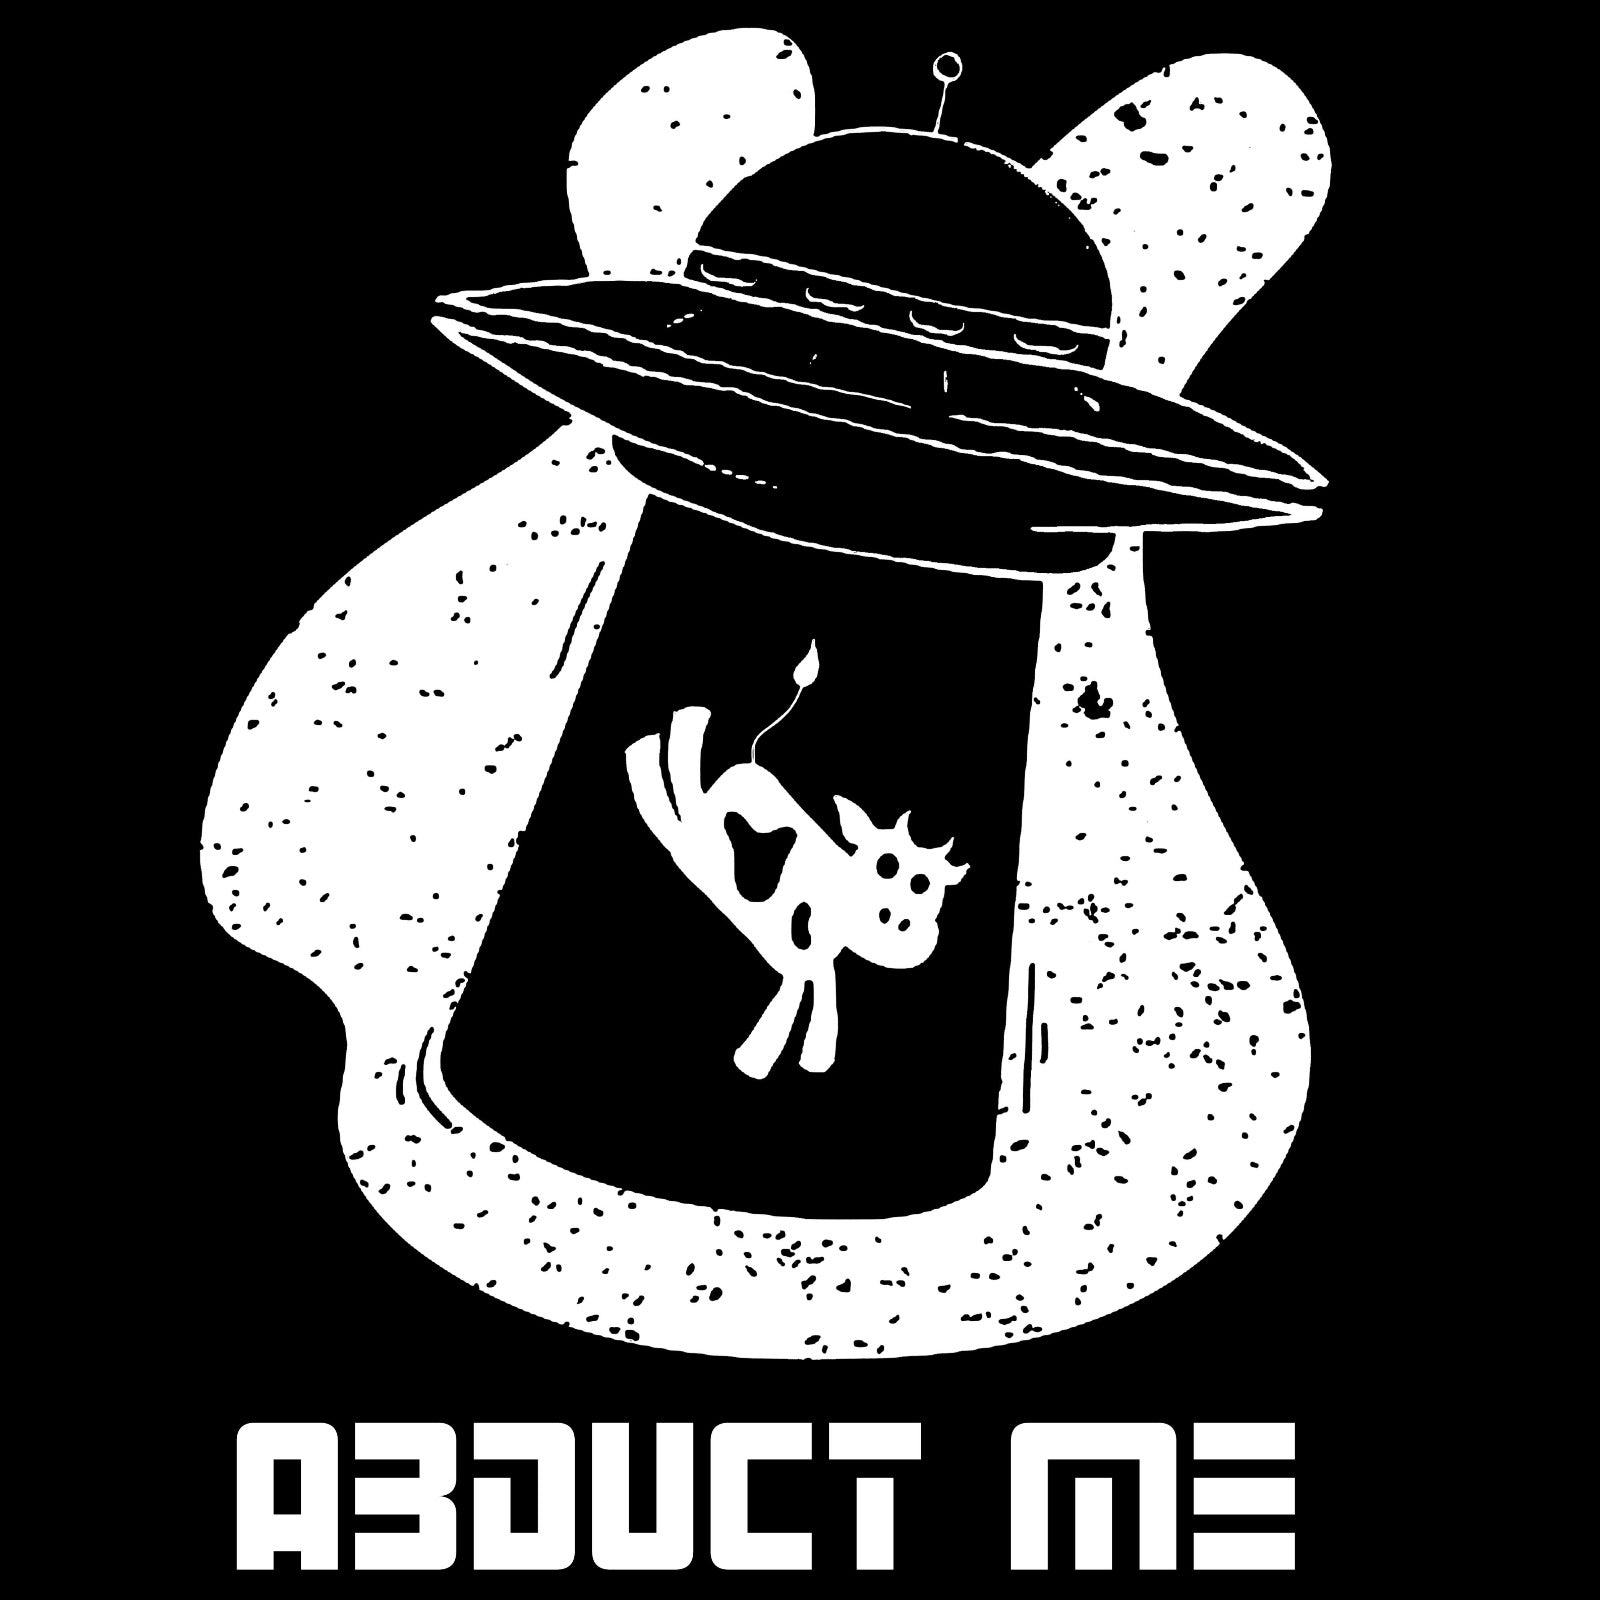 Abduct Me - Bastard Graphics